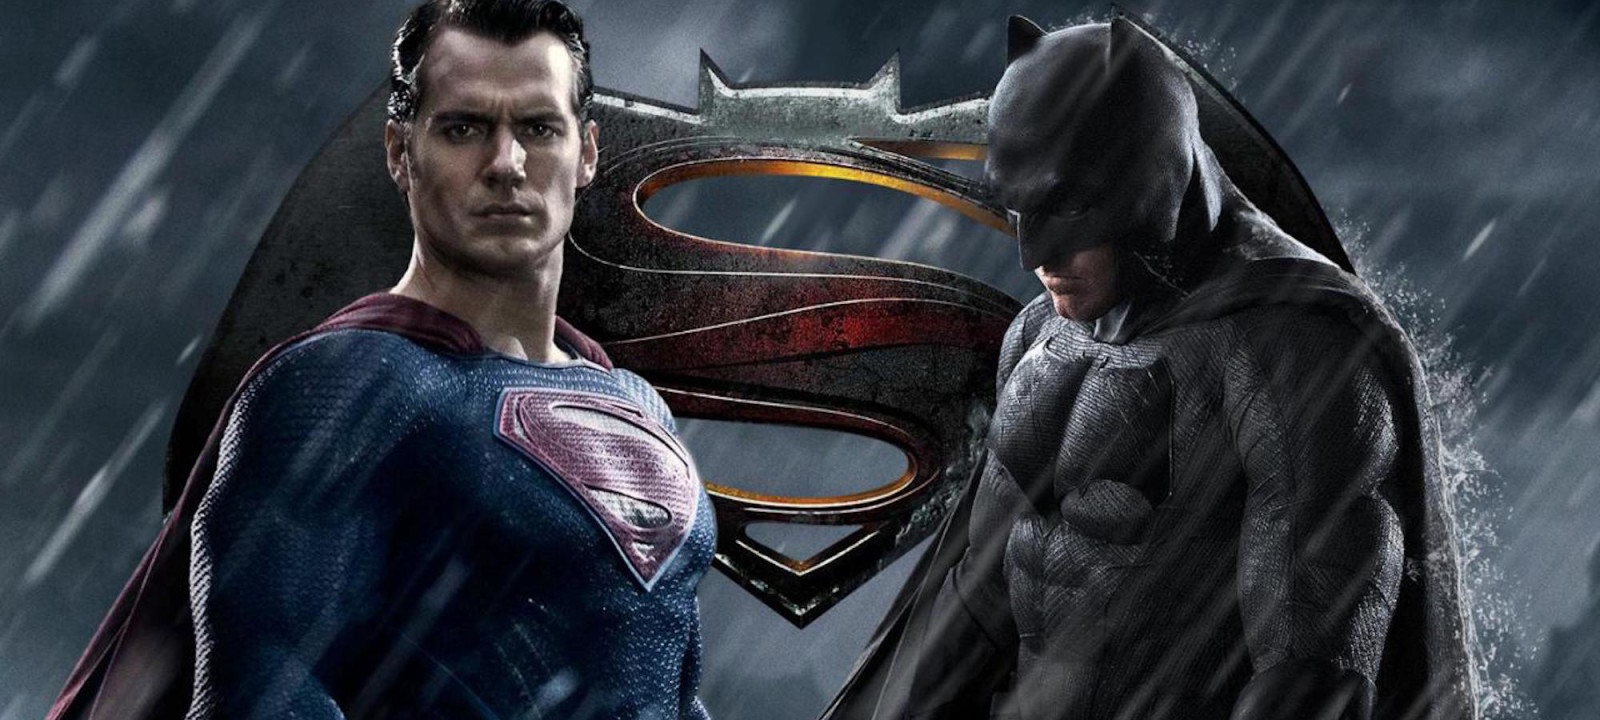 Ben Affleck and Henry Cavill star in Batman v Superman: Dawn of Justice.